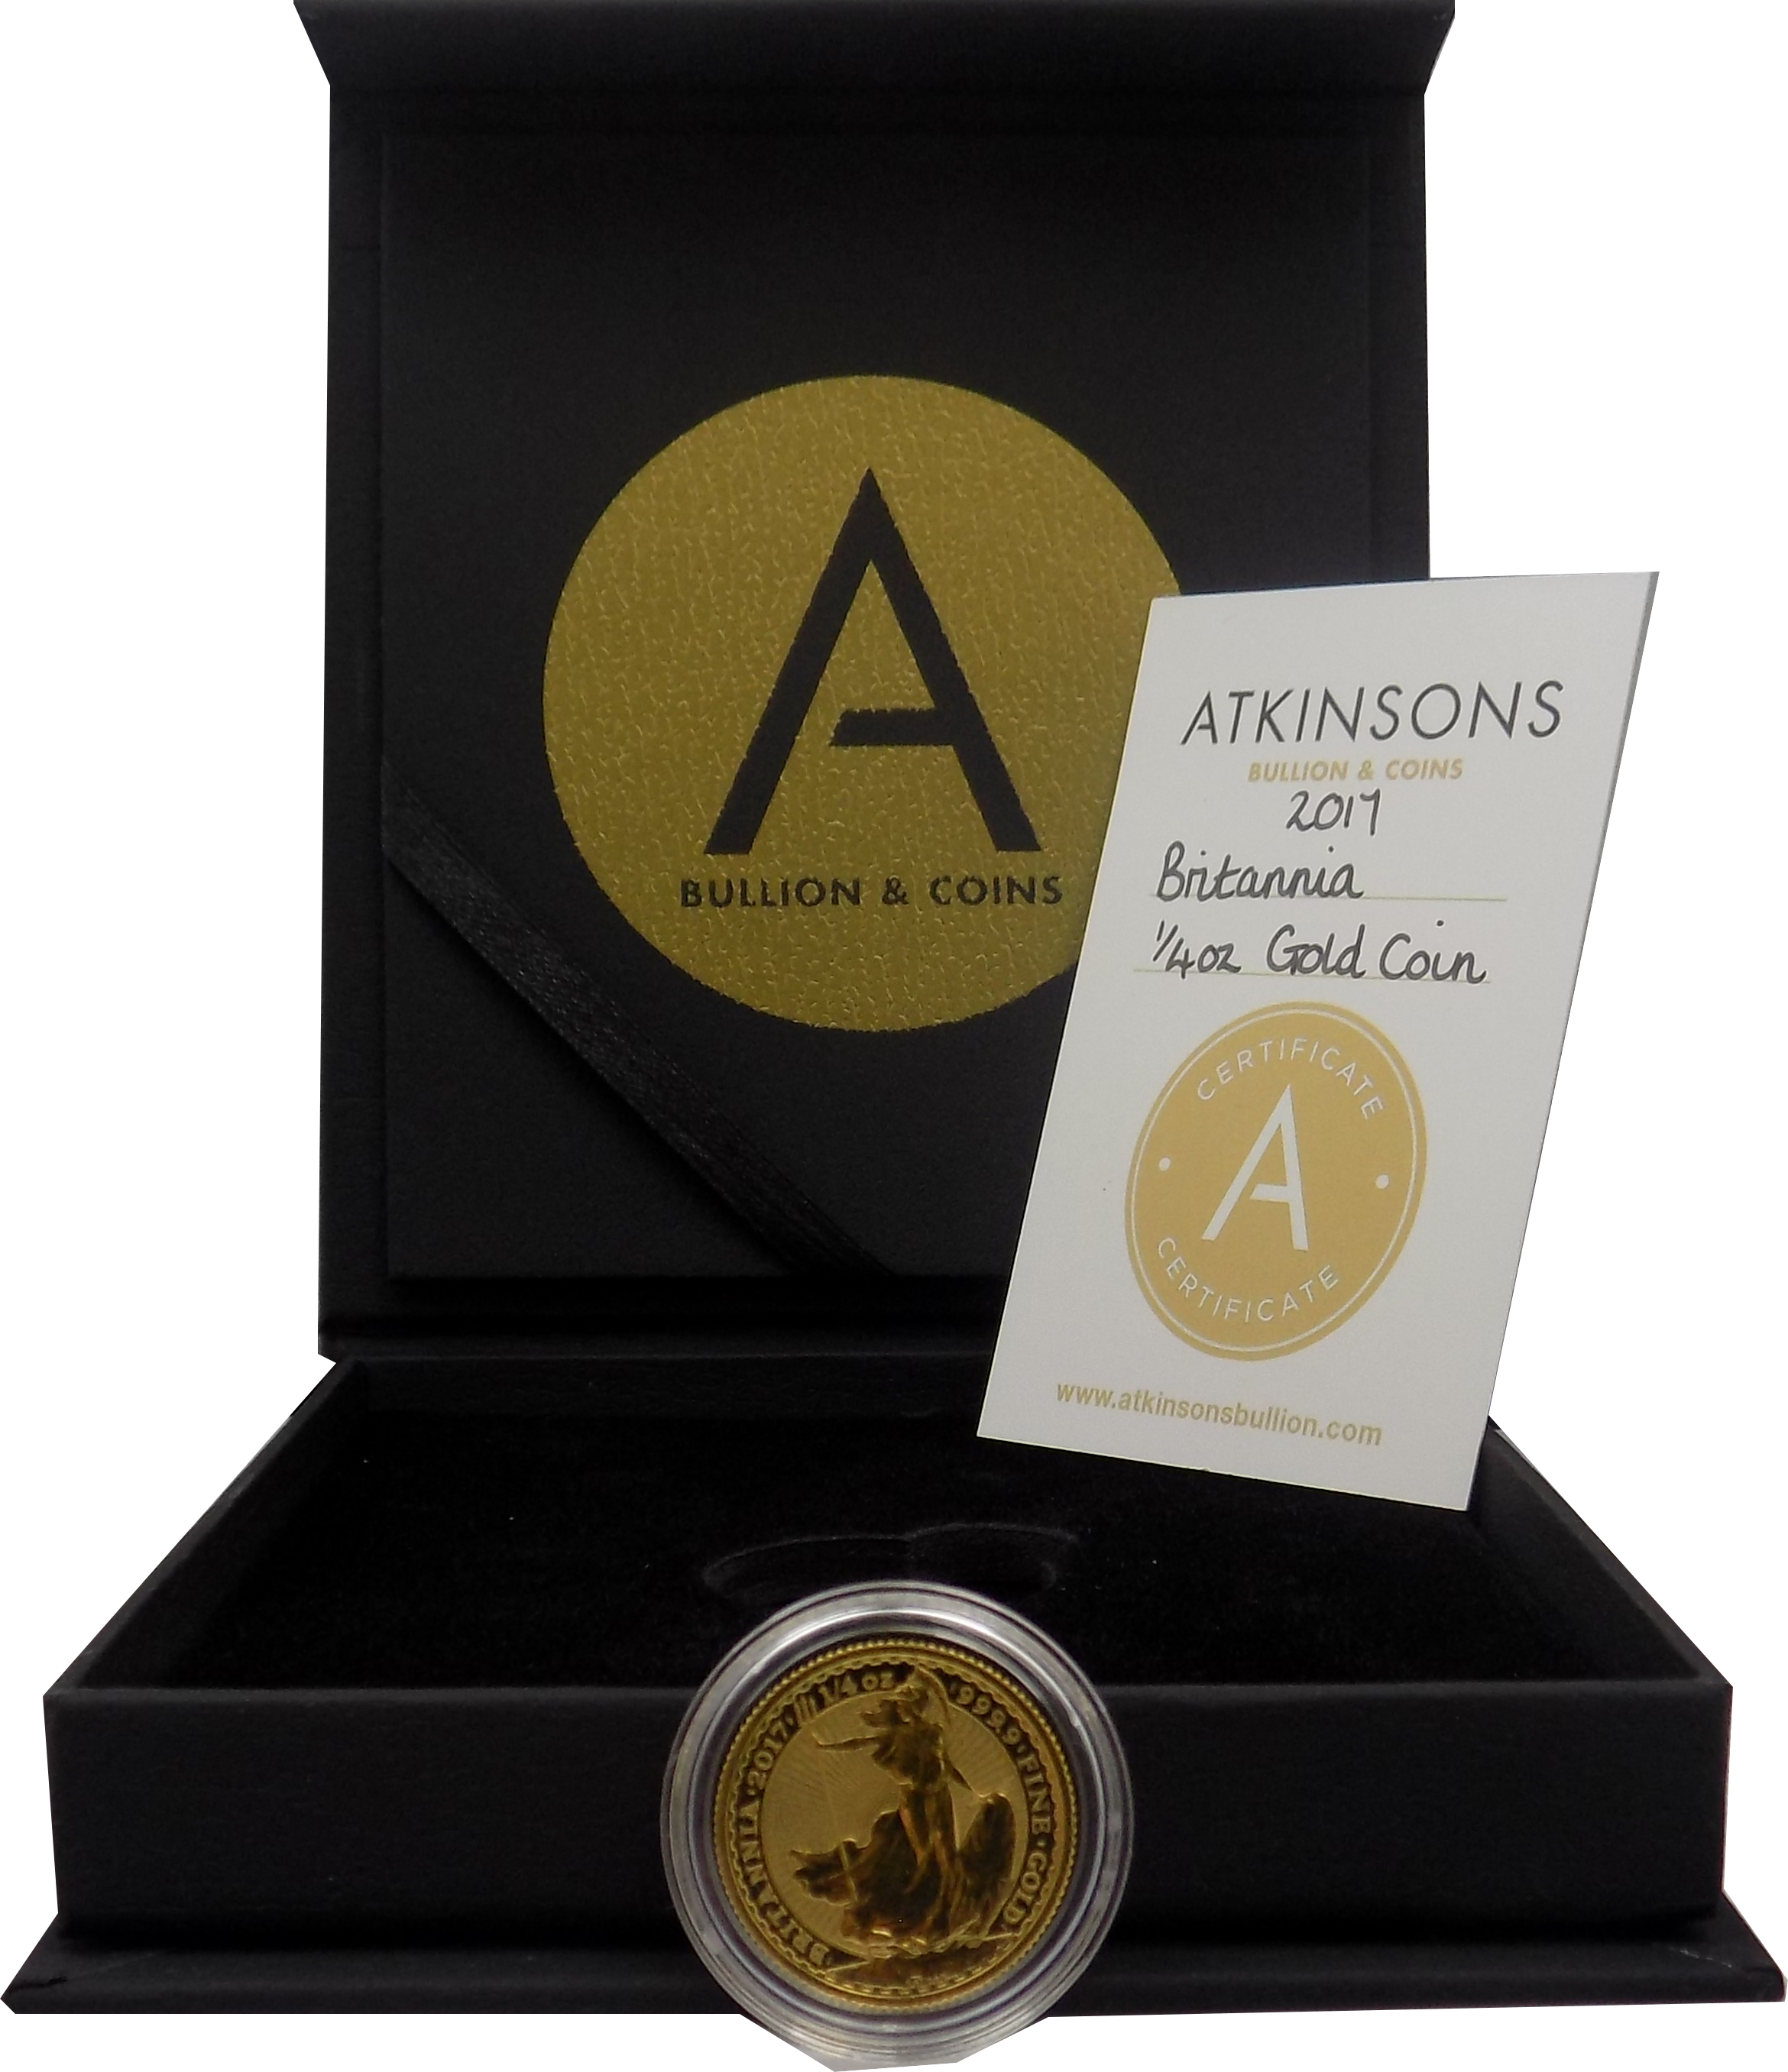 2017 UK Britannia 1/4oz Gold Coin with Gift Box & Certificate (Image 3)